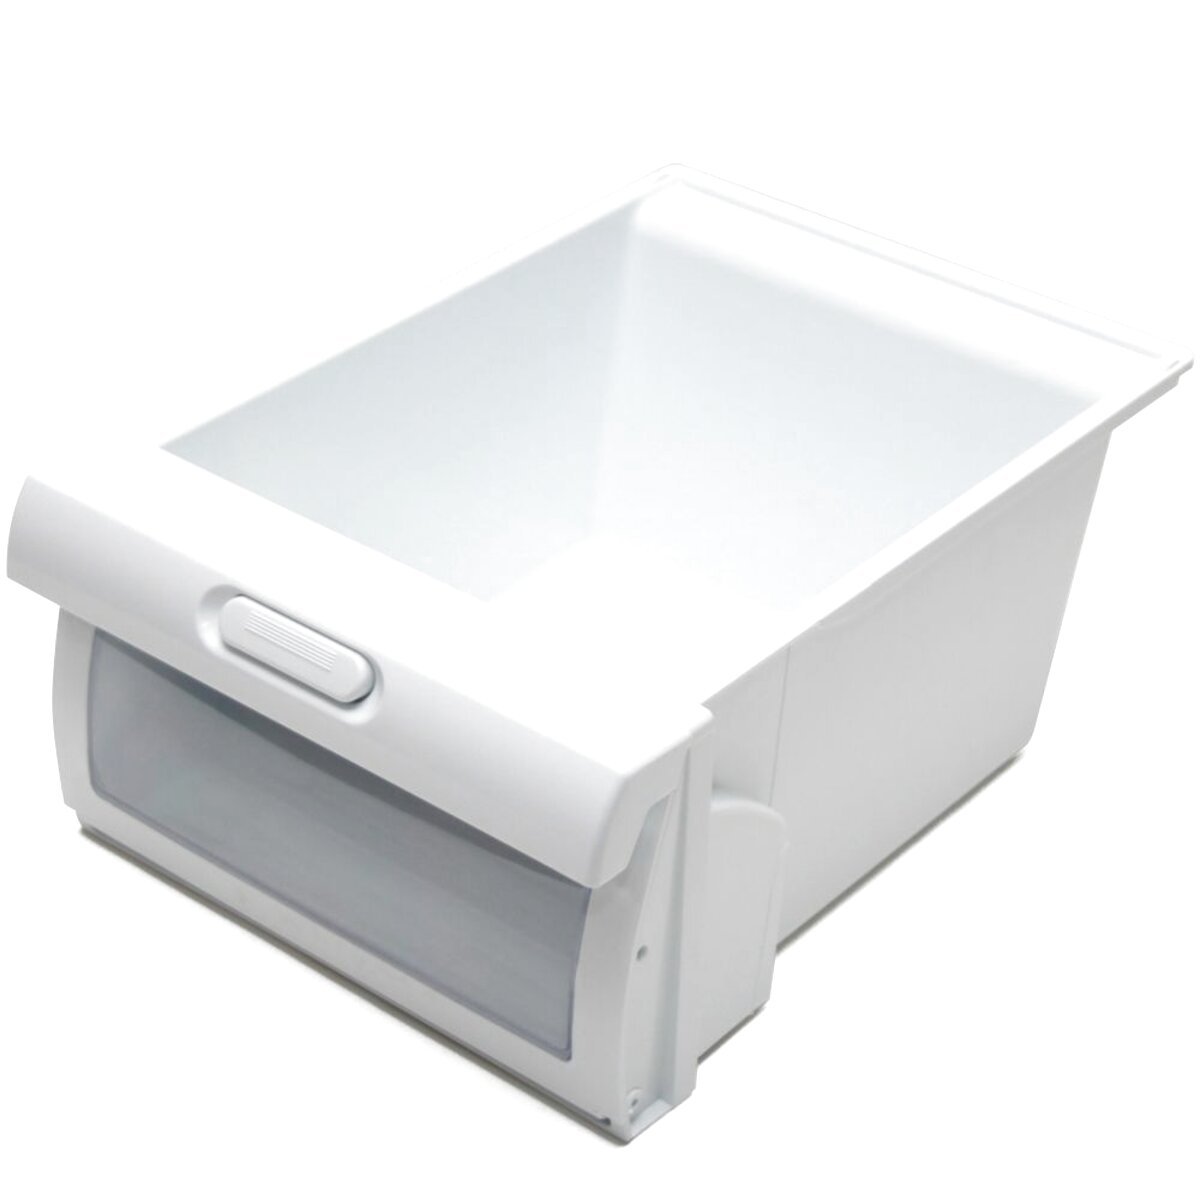 kenmore refrigerator drawer for sale